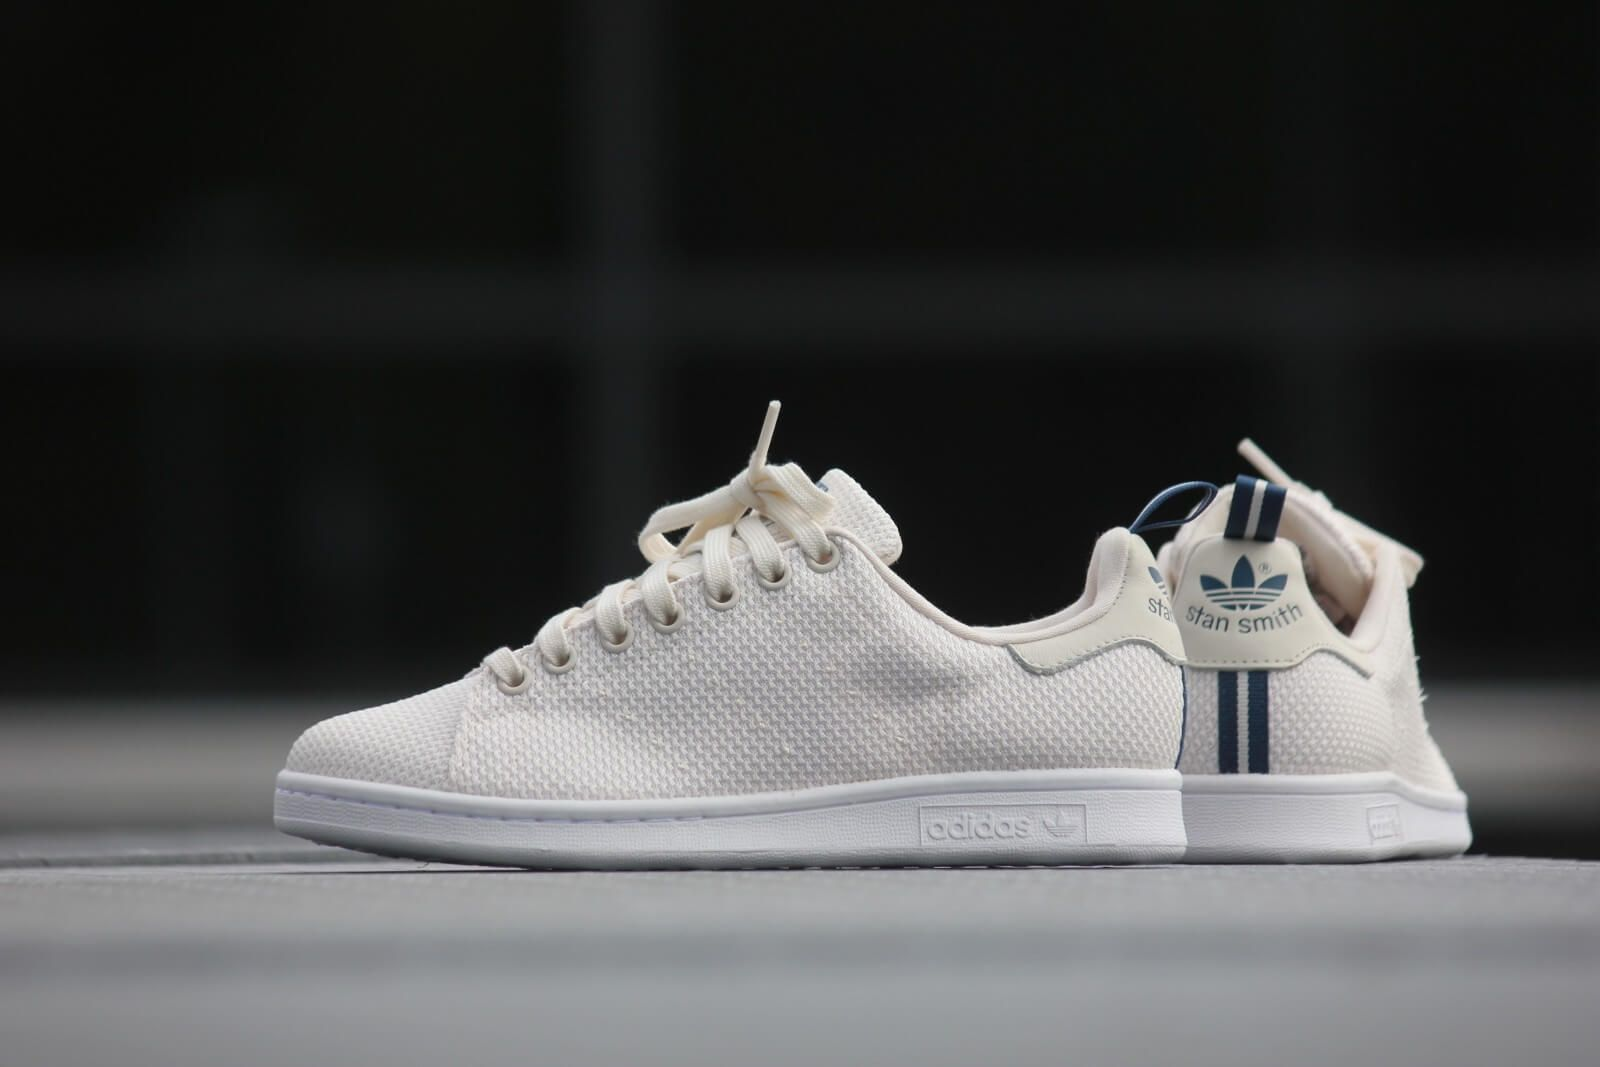 Adidas Stan Smith CK Core White - S75024 | Stylish running shoes ...